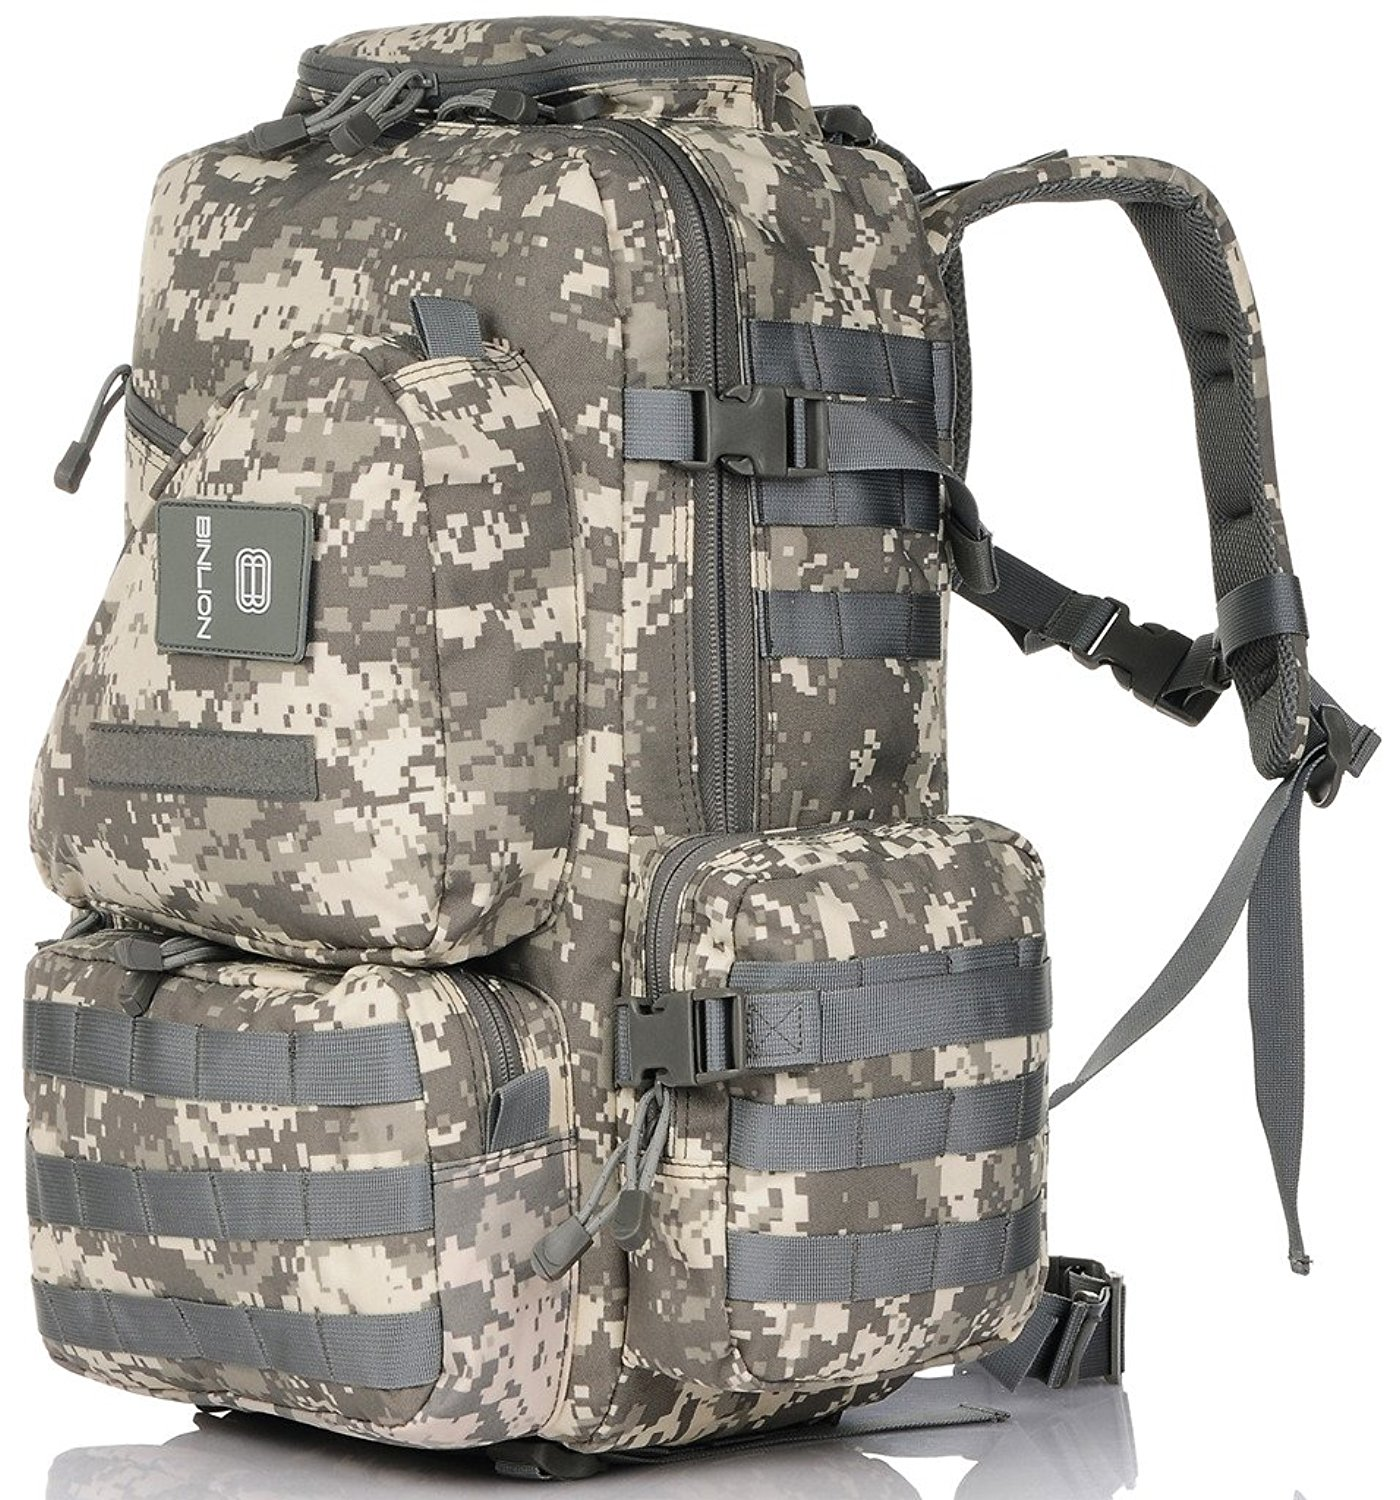 2dcb3510da Get Quotations · Binlion Camouflage Military Multipurpose Tactical Backpacks  Hiking backpacks and Casual backpacks and Running waist packs